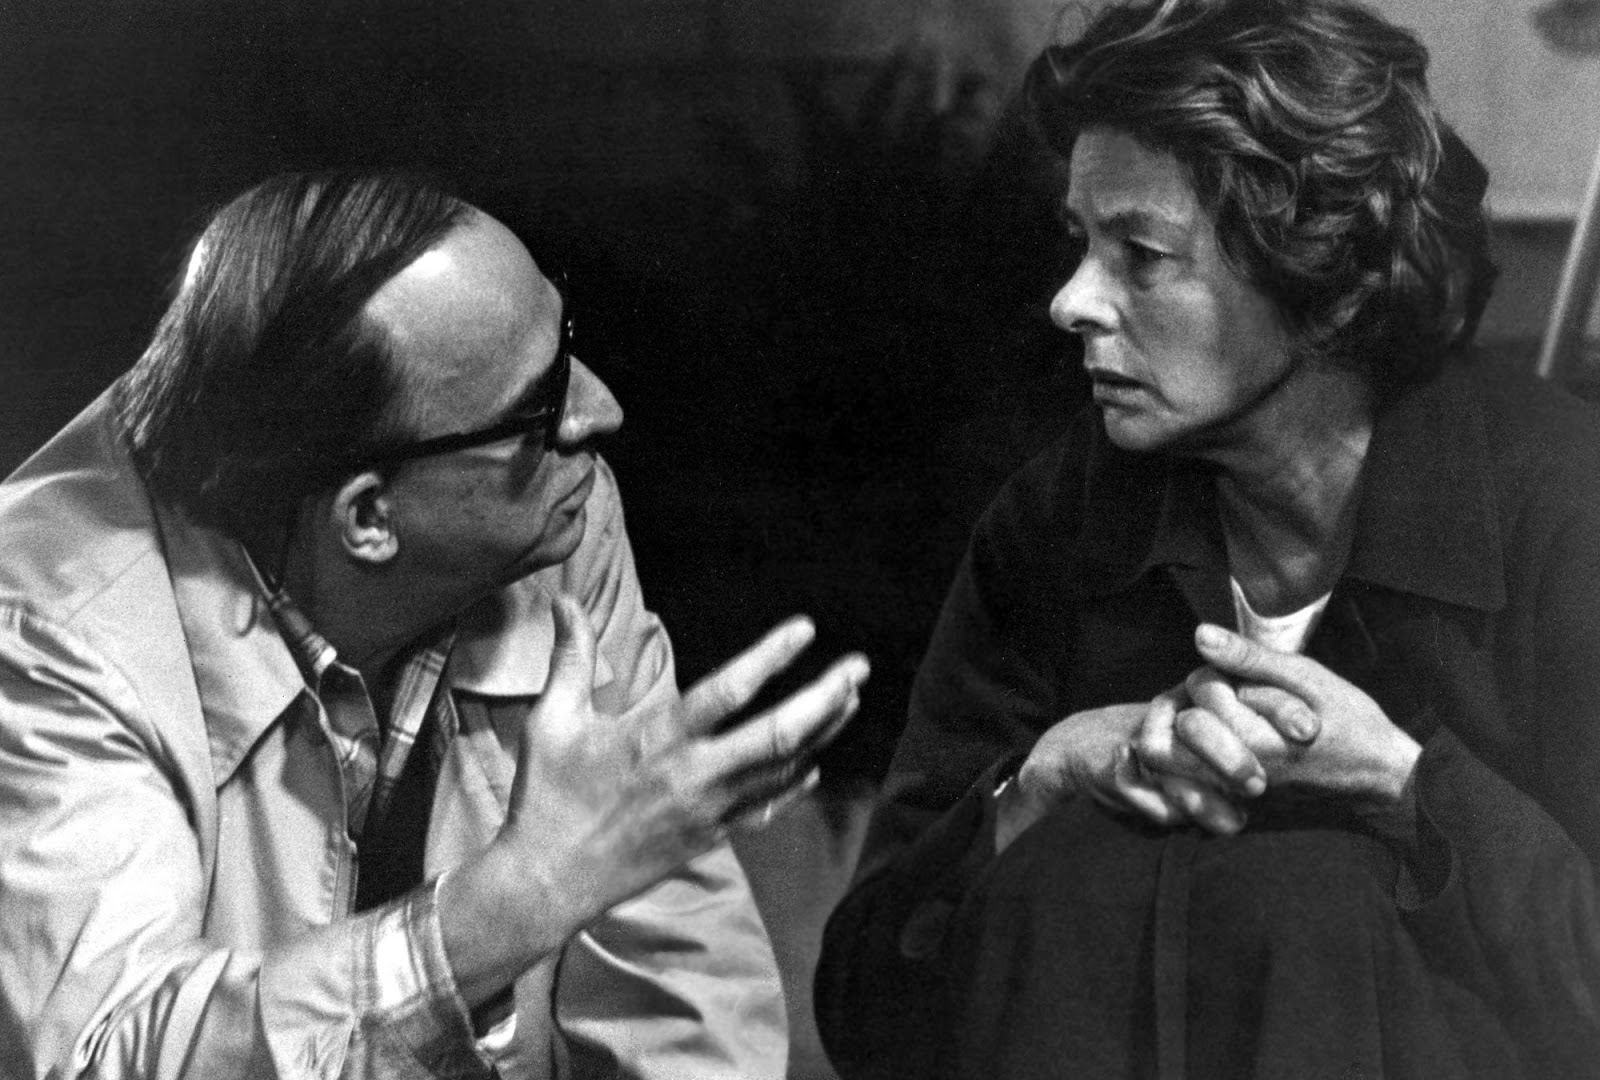 Ingmar Bergman directs Ingrid on the set of  Autumn Sonata . When Ingrid met Ingmar at Cannes a few years earlier, she reportedly slipped a note into his pocket, telling him that she wanted to work with him.